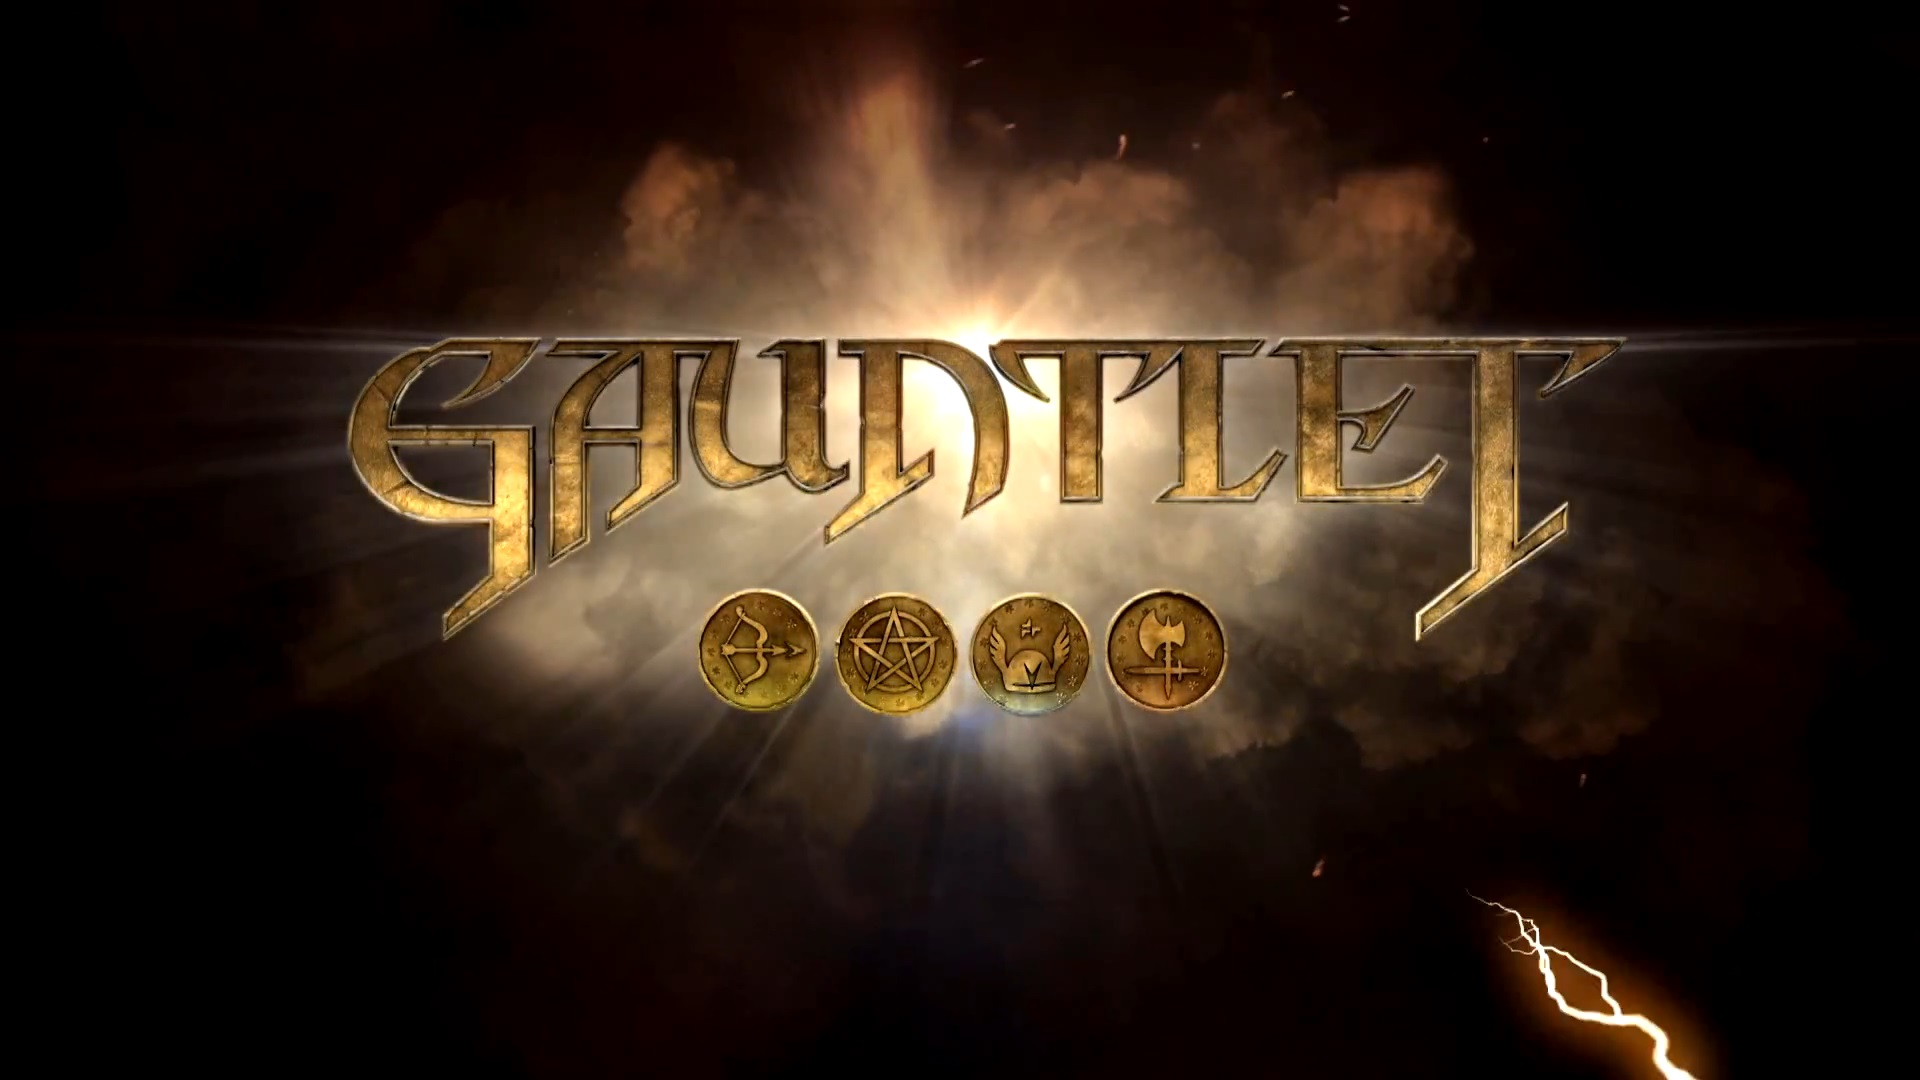 New Gauntlet Game Coming Summer 2014 to PC Thats It Guys 1920x1080